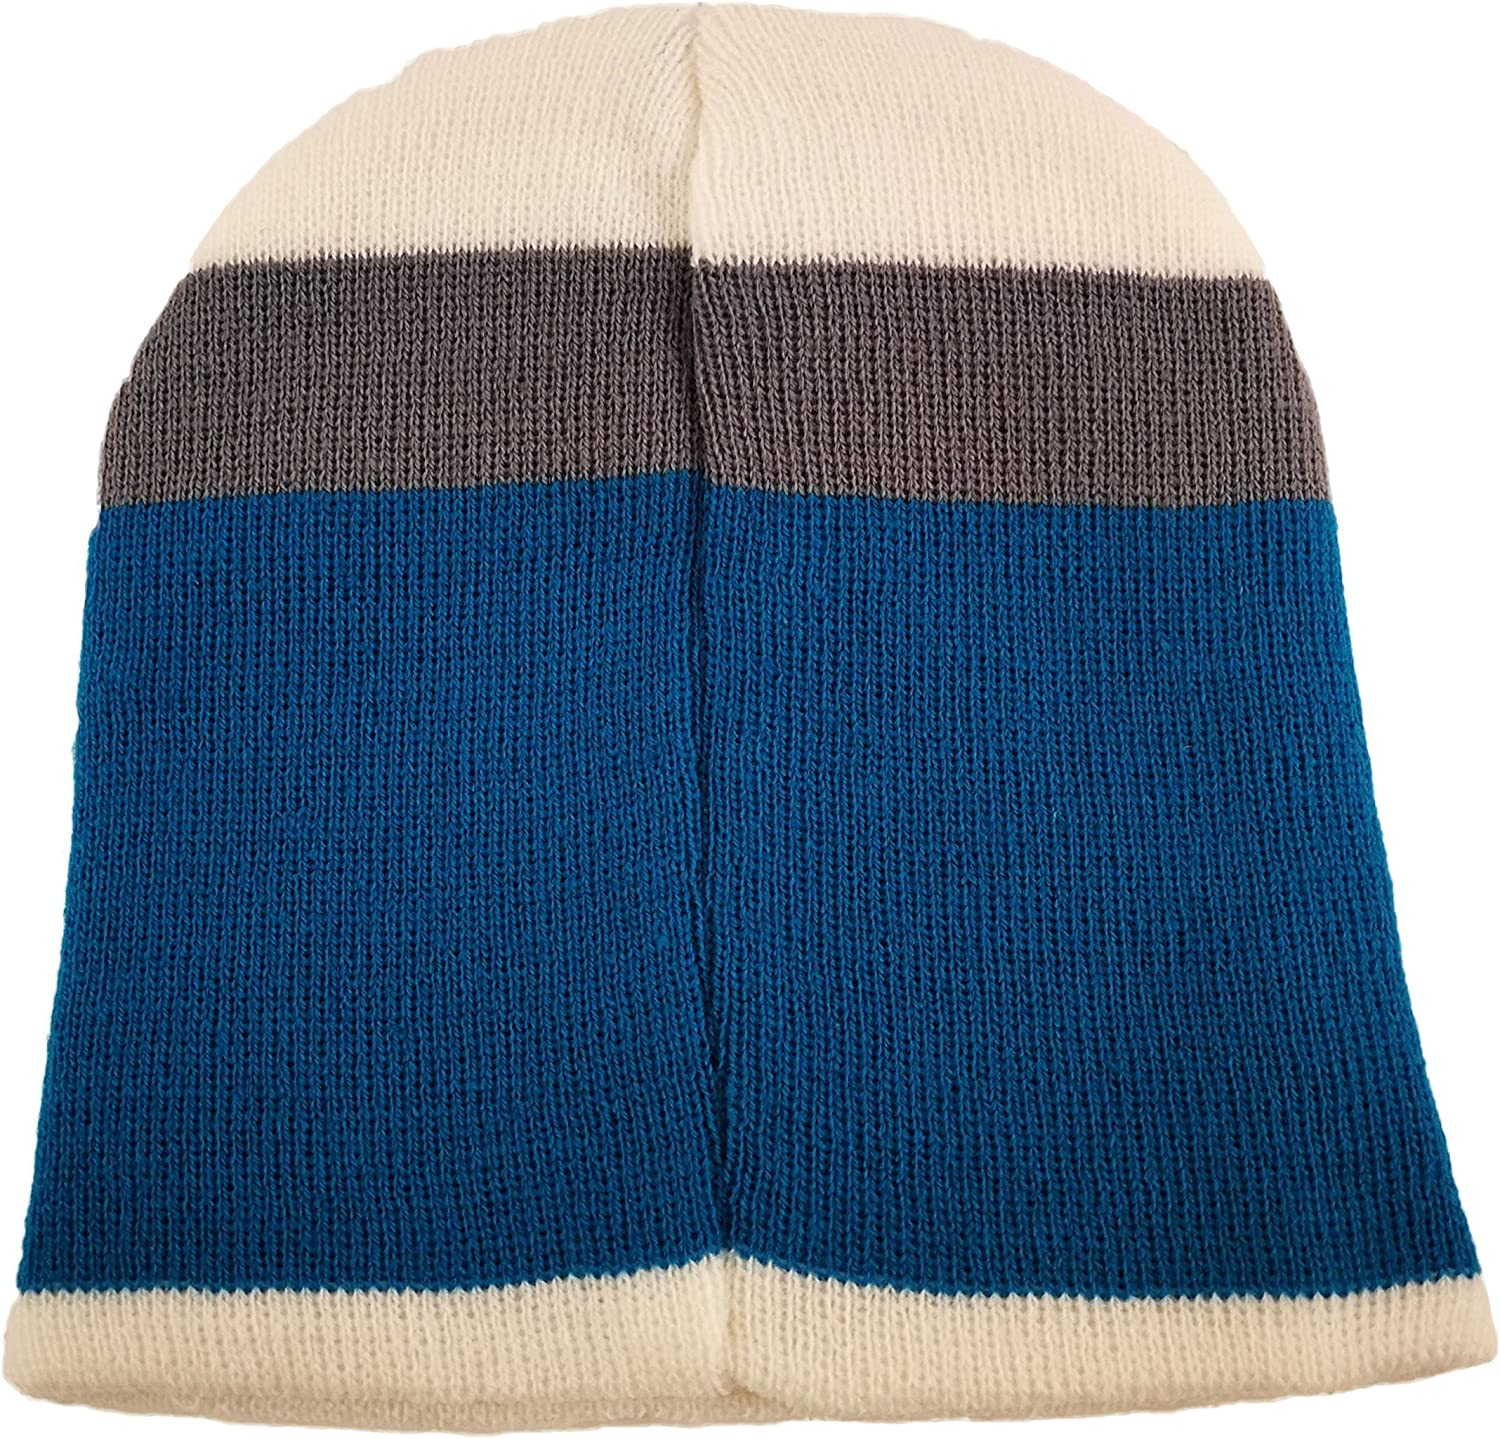 ANTHER Boys Hat One Size